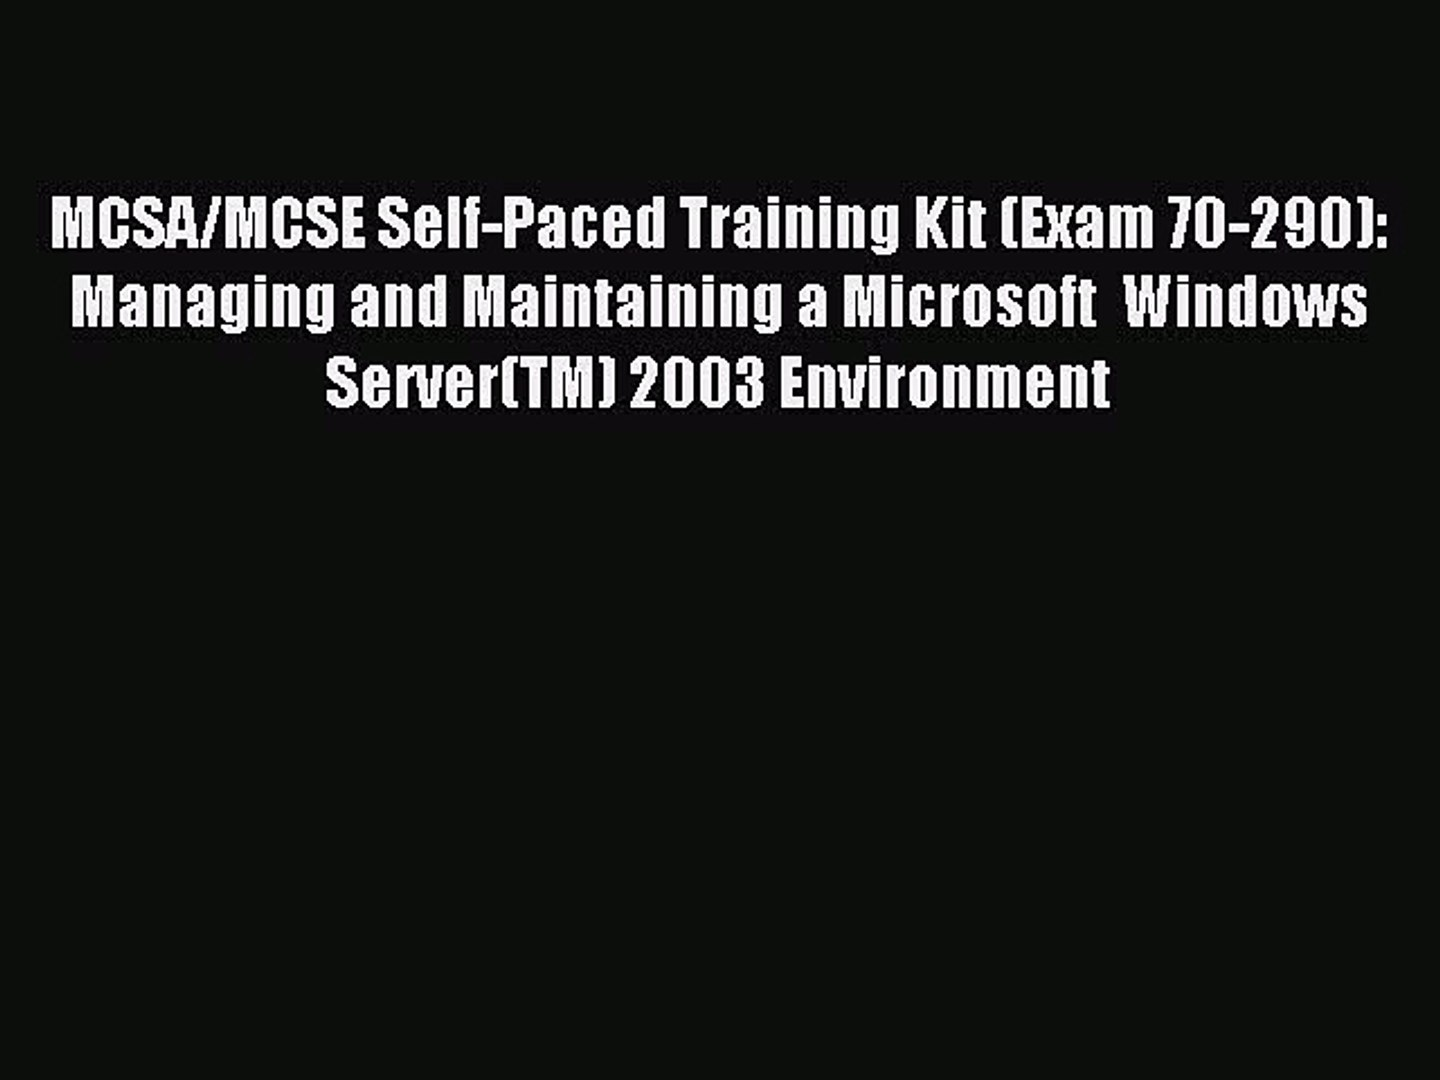 Read MCSA/MCSE Self-Paced Training Kit (Exam 70-290): Managing and Maintaining a Microsoft